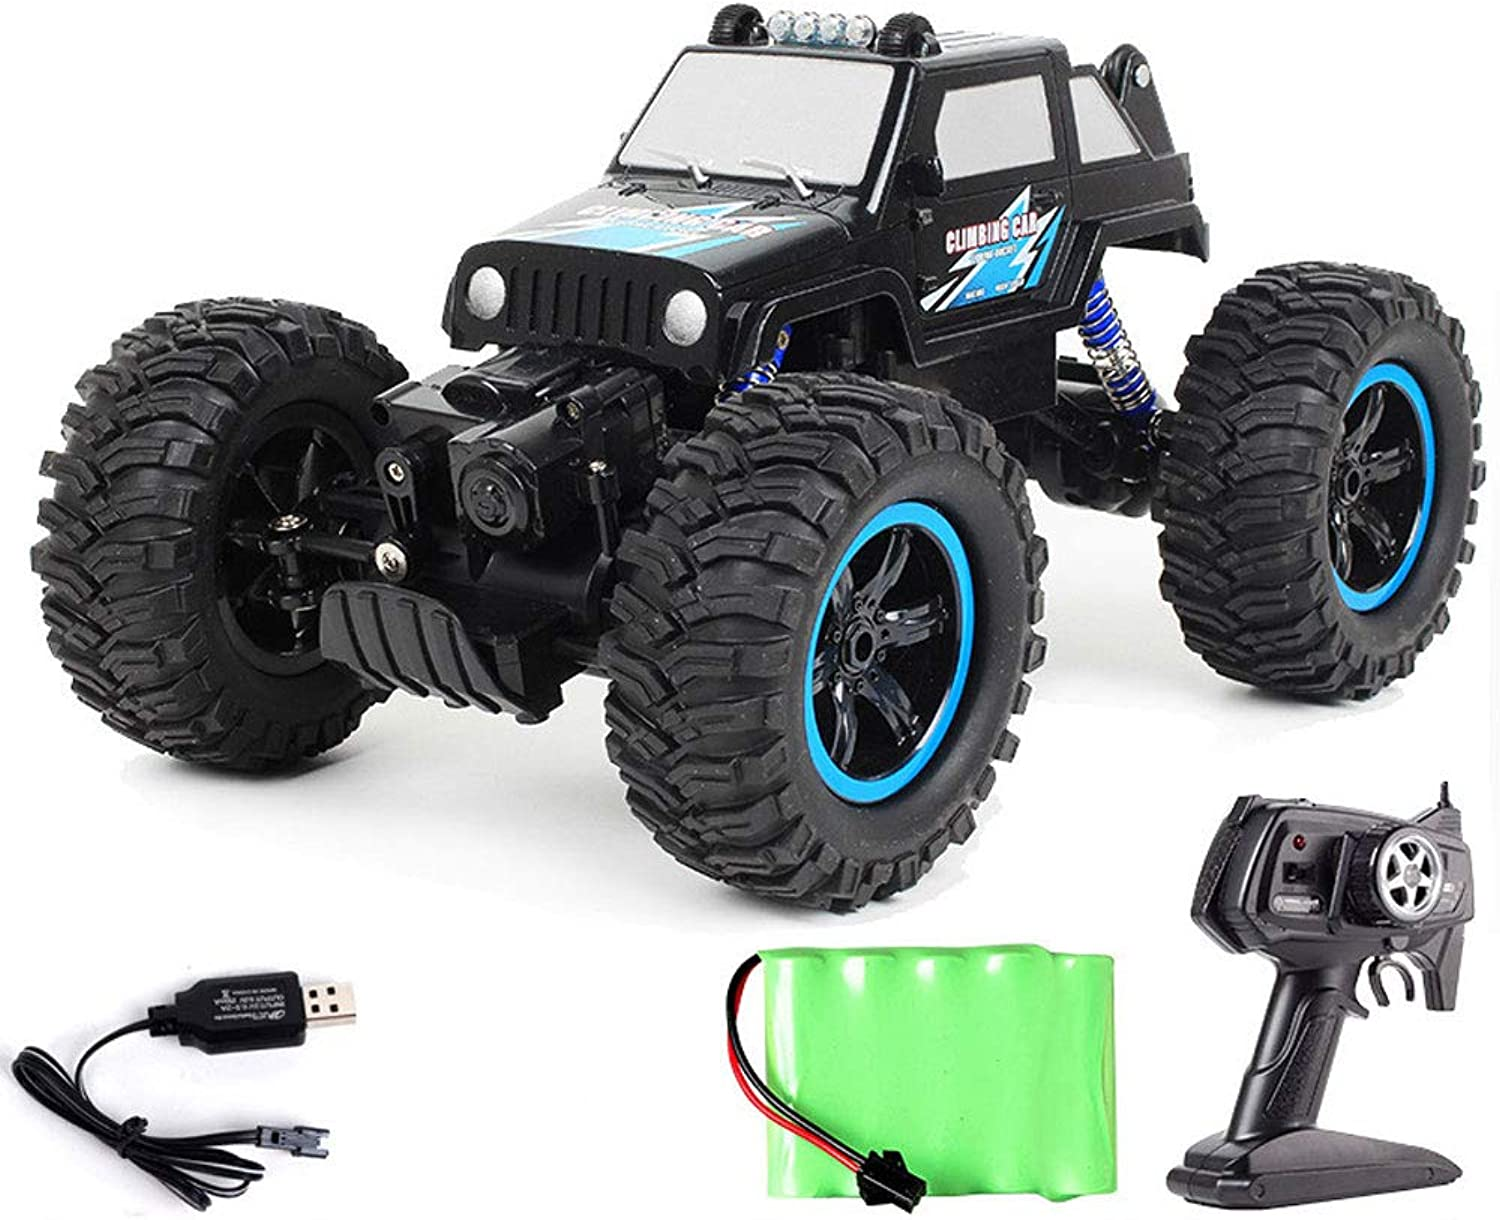 YYD Highspeed offroad remote control car  large tires, front and rear fourwheel drive, with stronger climbing ability,2836bluee